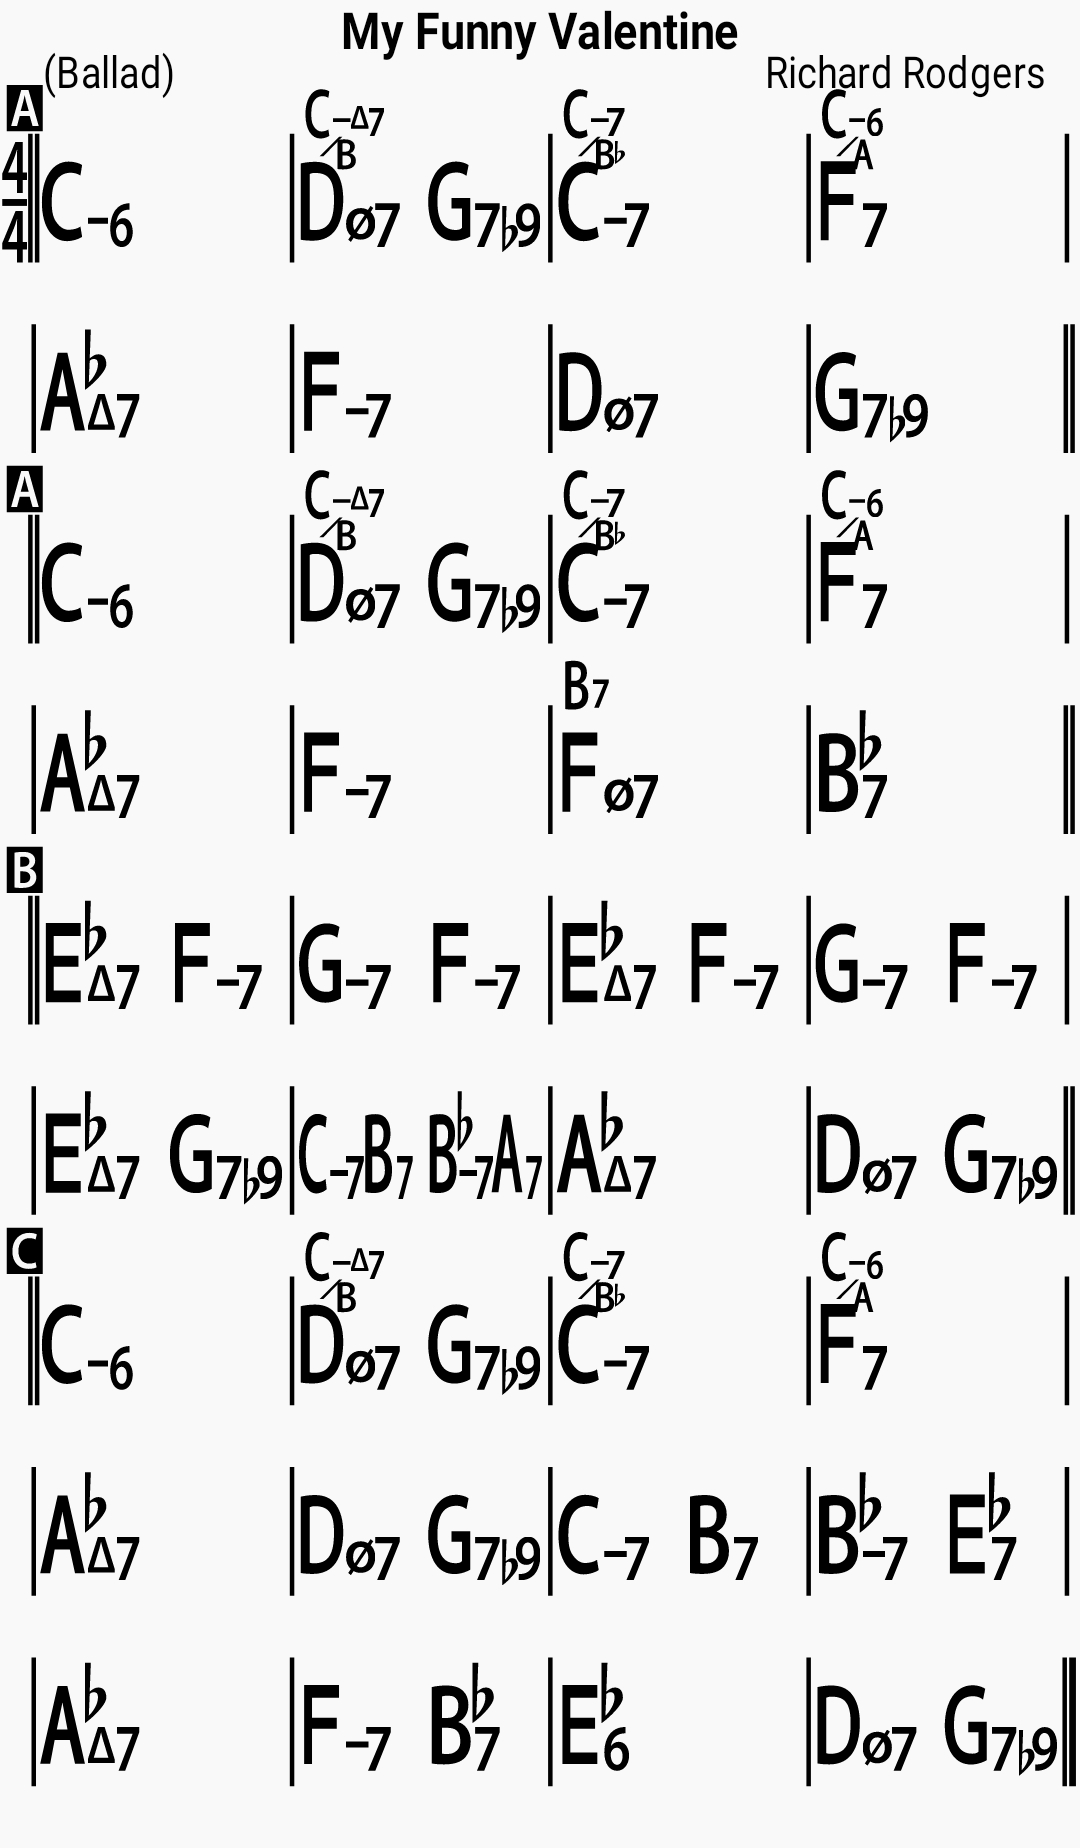 Chord chart for the jazz standard My Funny Valentine